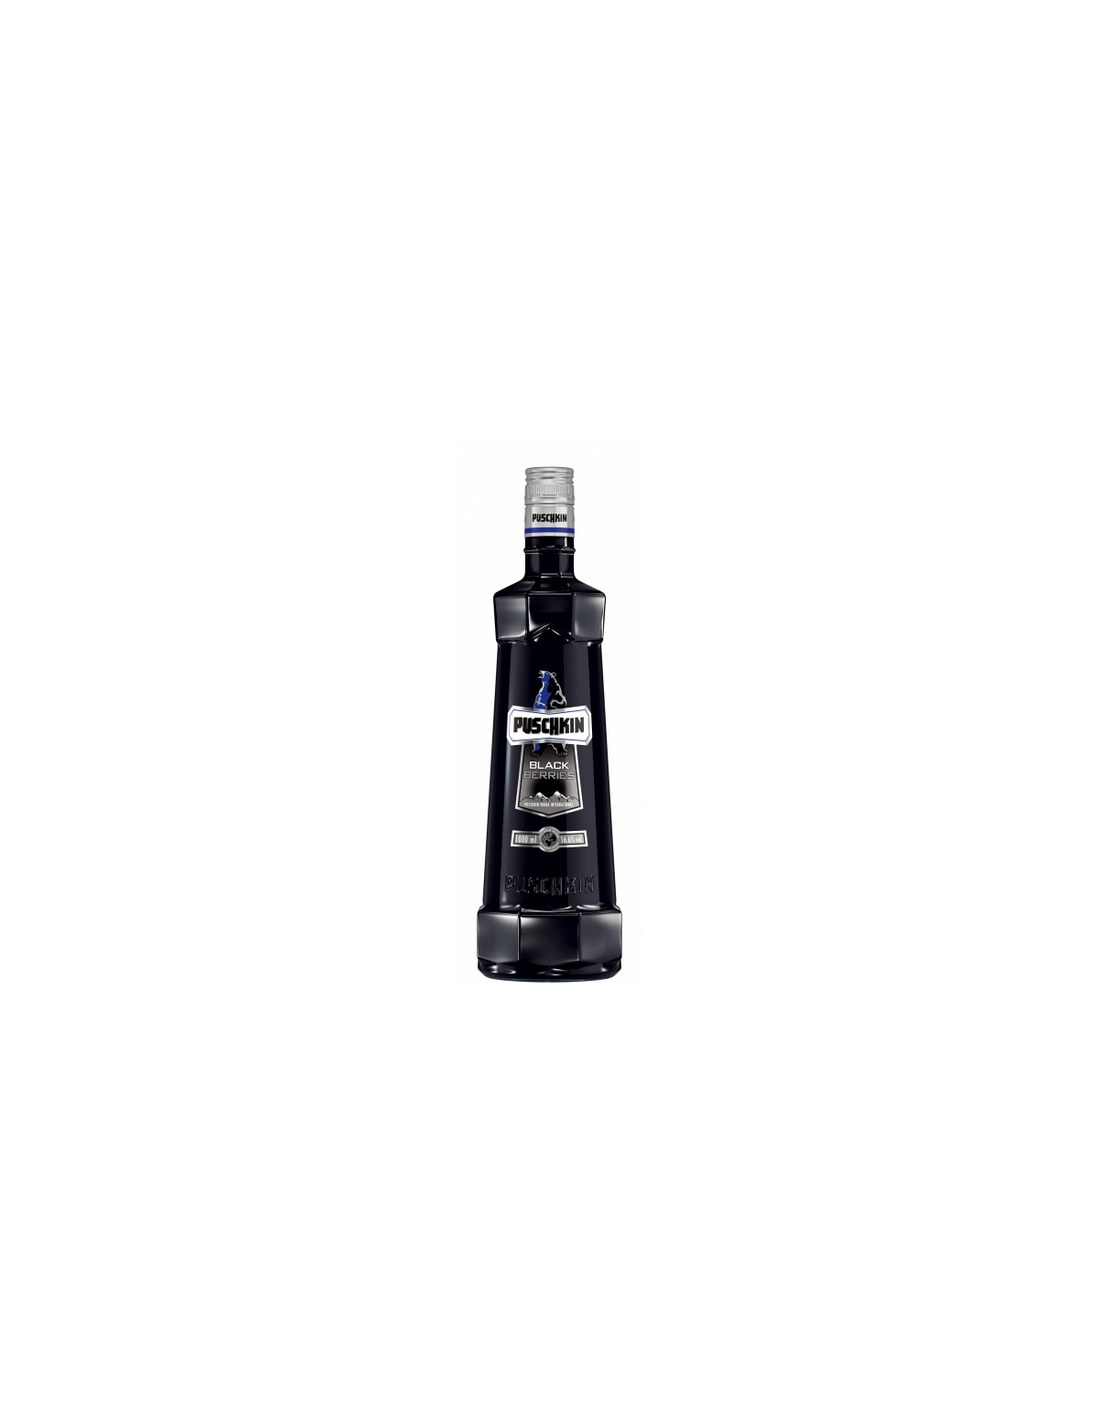 Vodca Puschkin Black Berries 0.7L, 37.5% alc., Germania